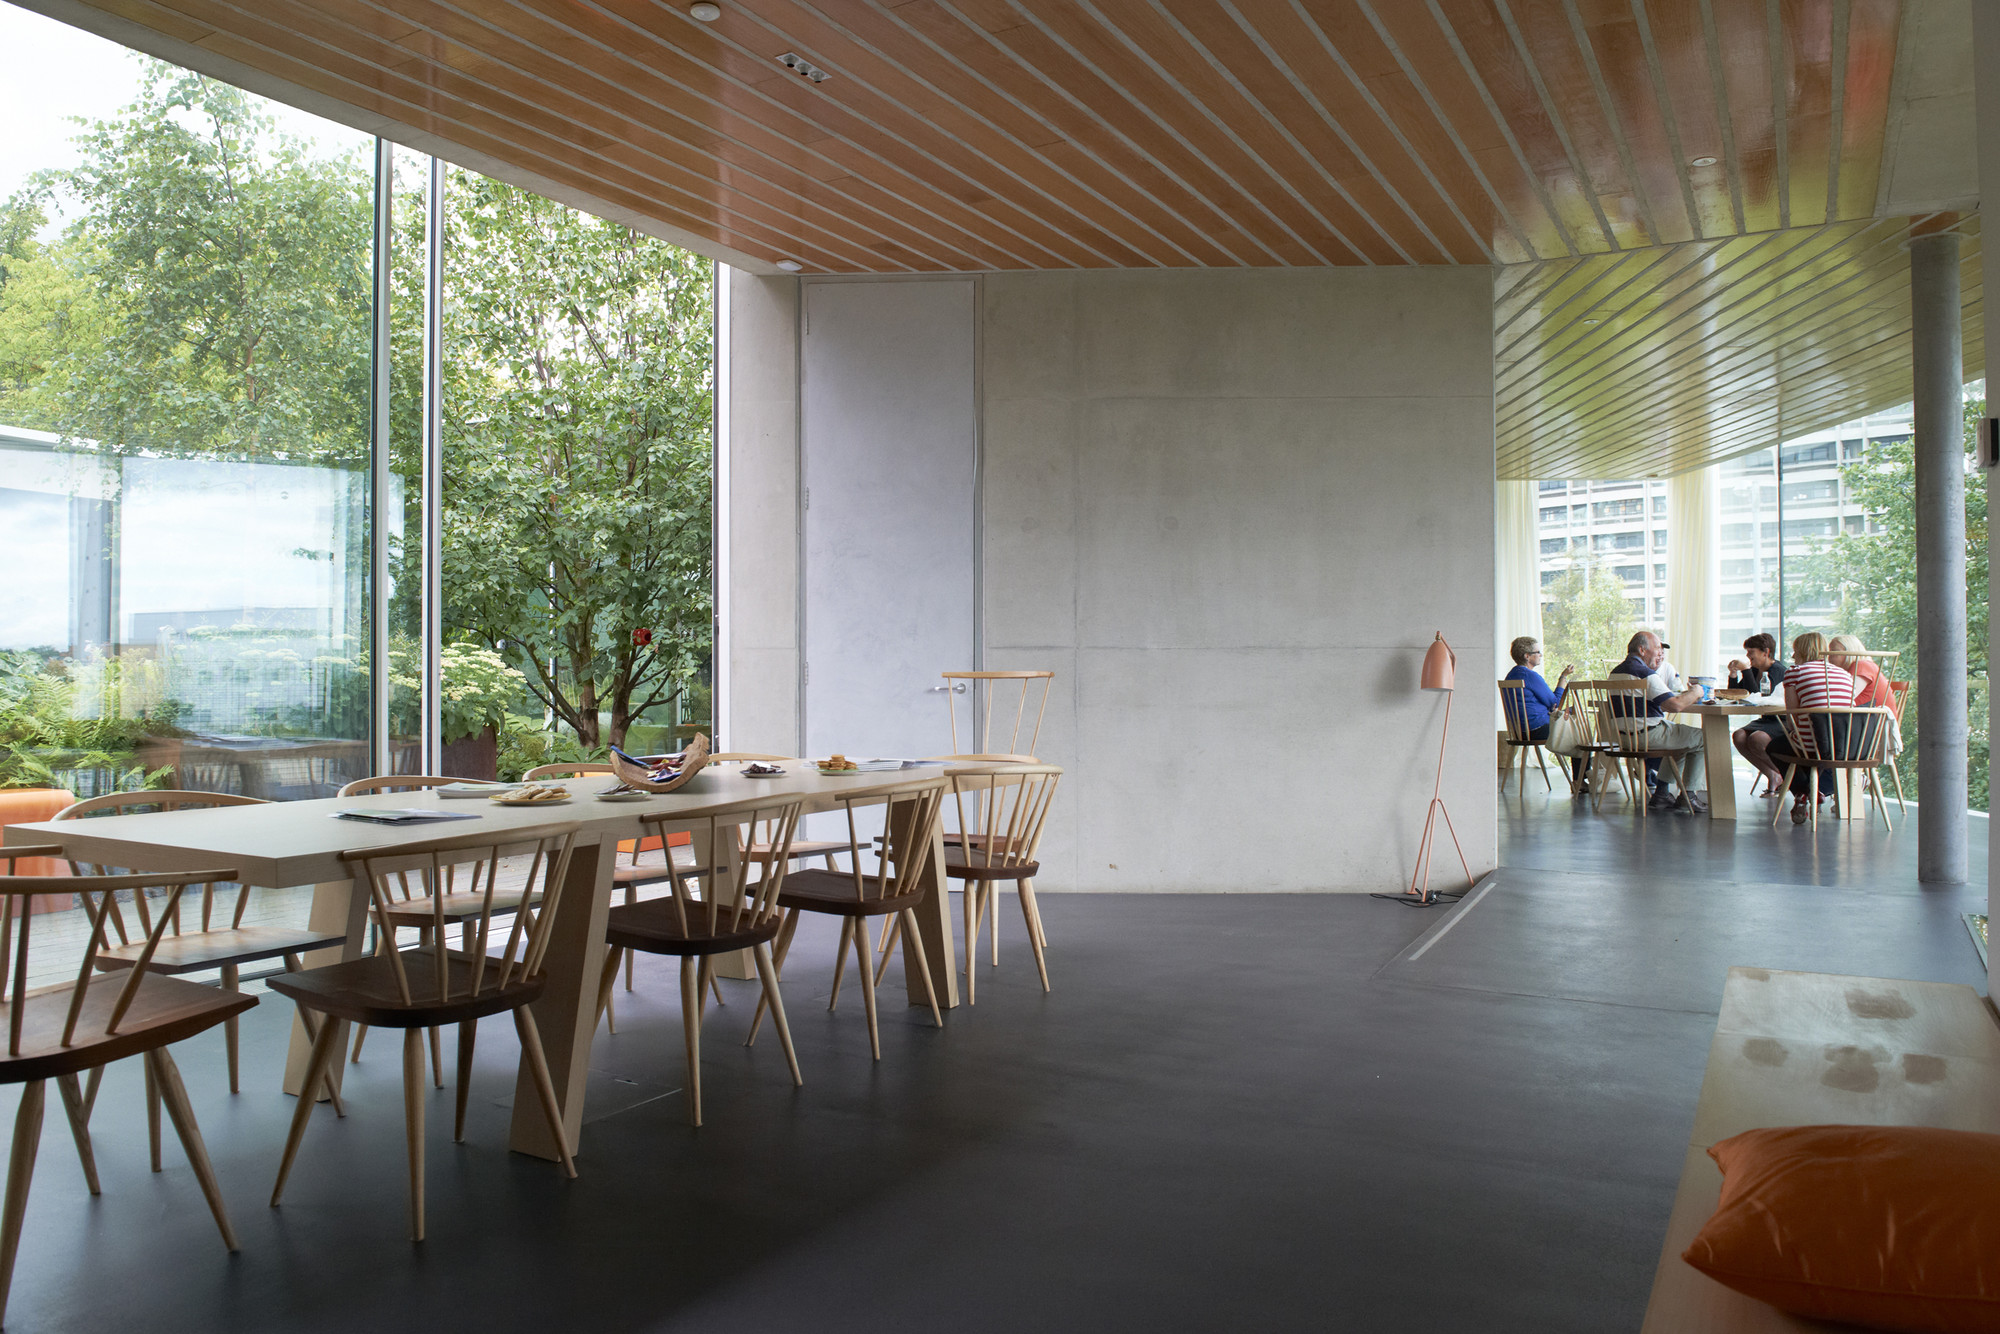 Design with empathy an exhibit honoring maggie 39 s - Office for metropolitan architecture oma ...